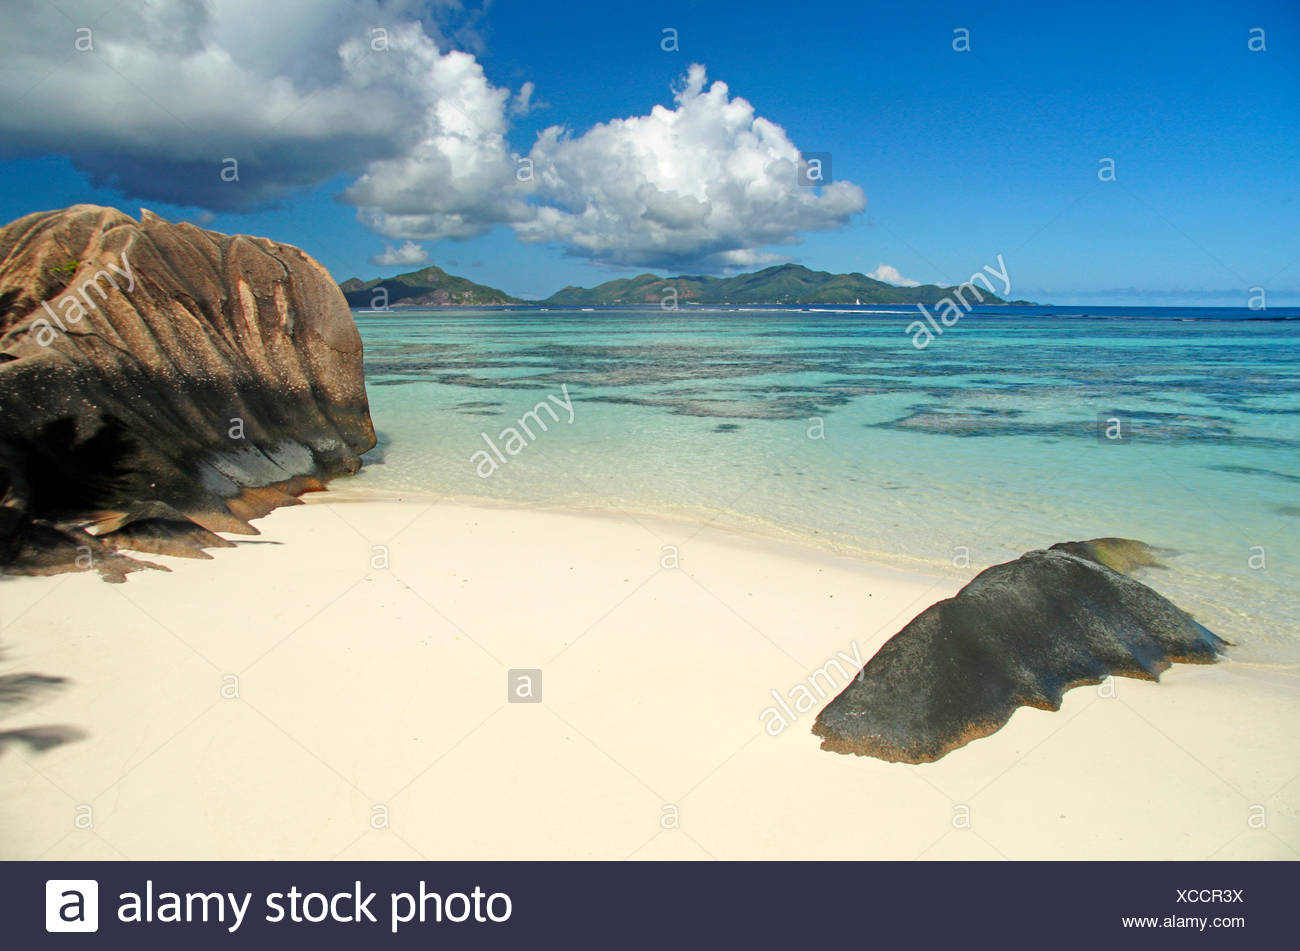 beach with granite rocks and view onto the island Praslin in the background, Seychelles, La Digue, Anse Source d Argent - Stock Image